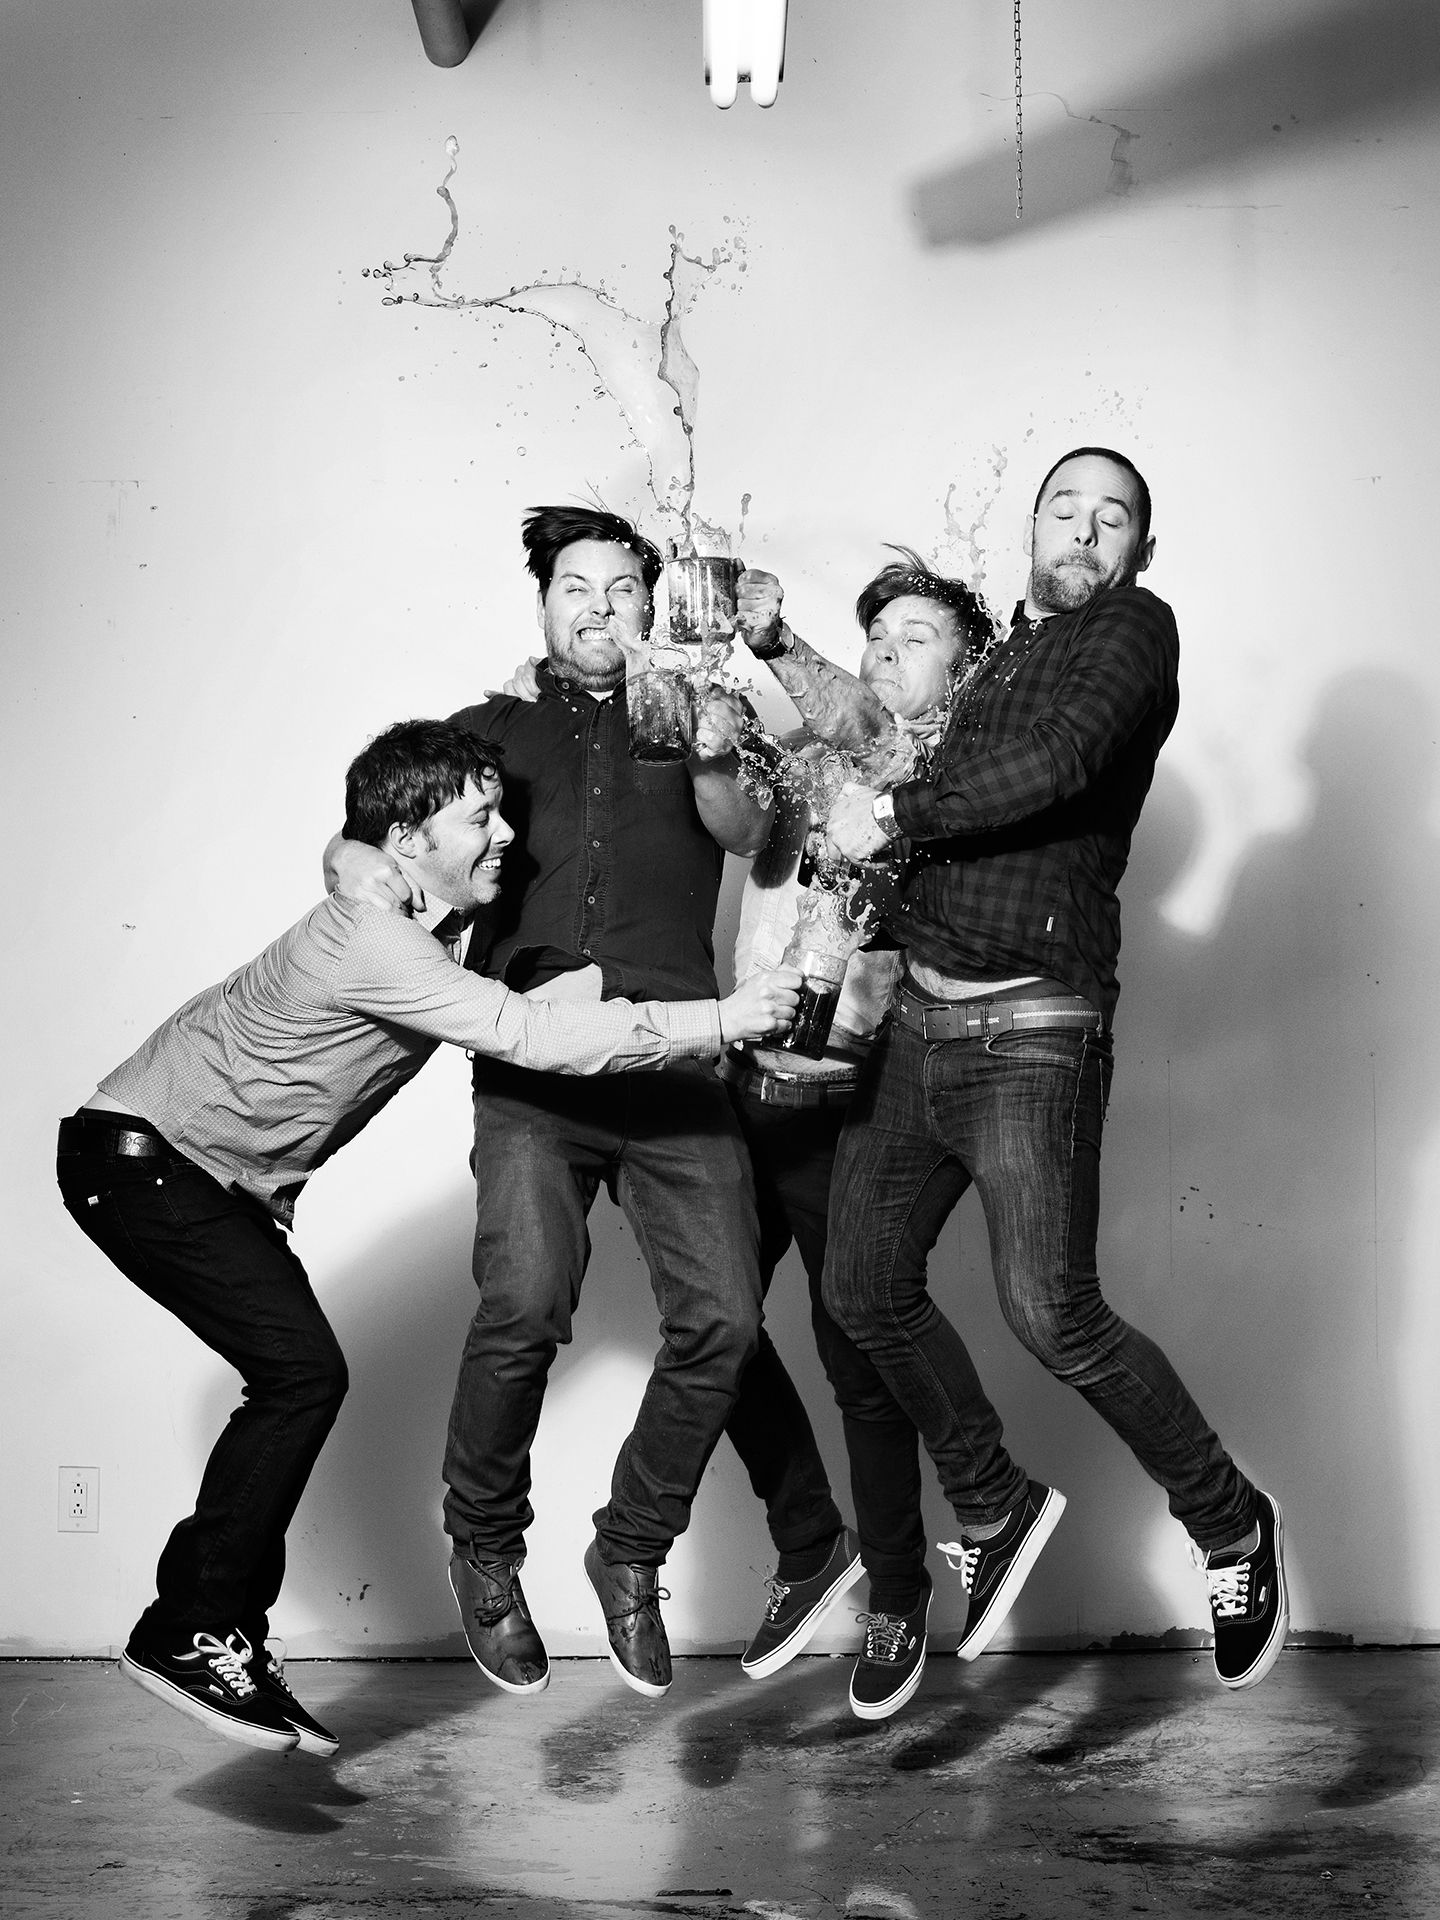 Les Trois Accords music group photographed jumping in the air by Jocelyn Michel for JUMP personal series